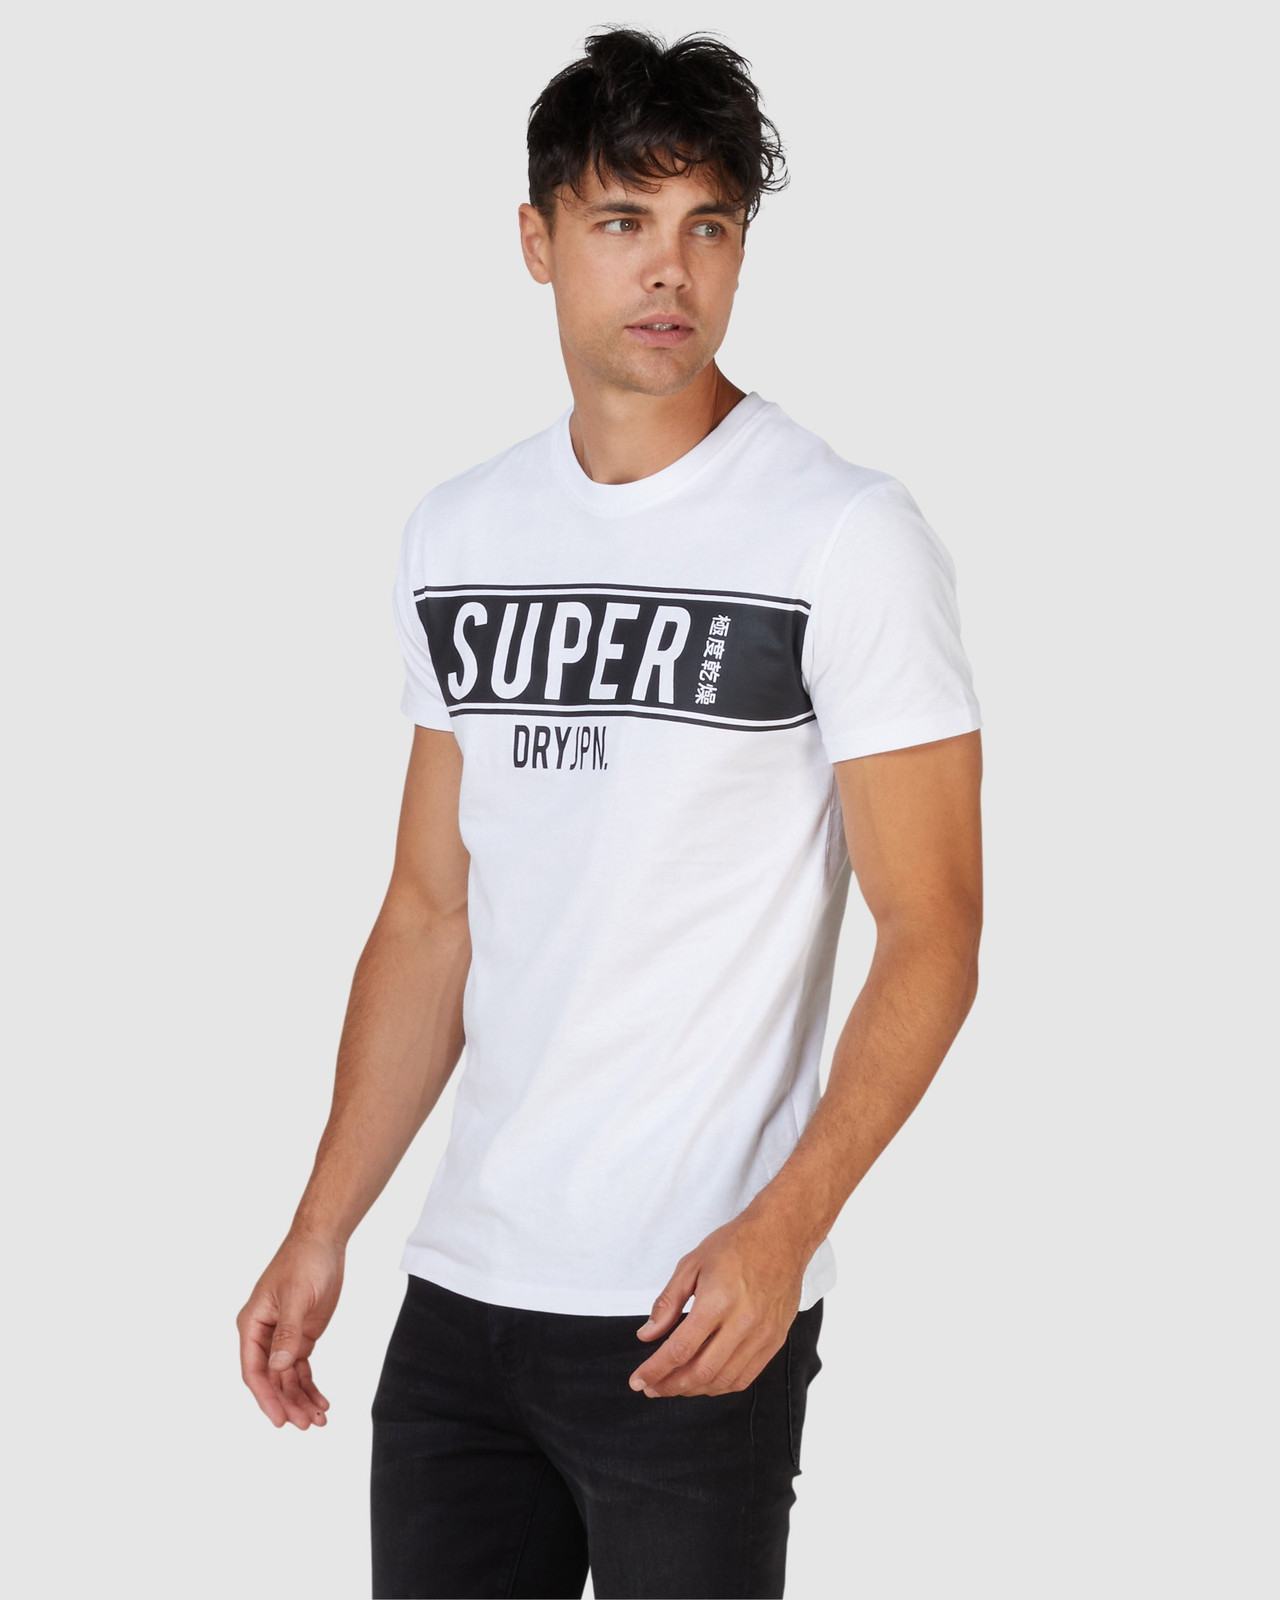 Superdry Mens SDRY PANEL TEE White Printed T Shirts 2